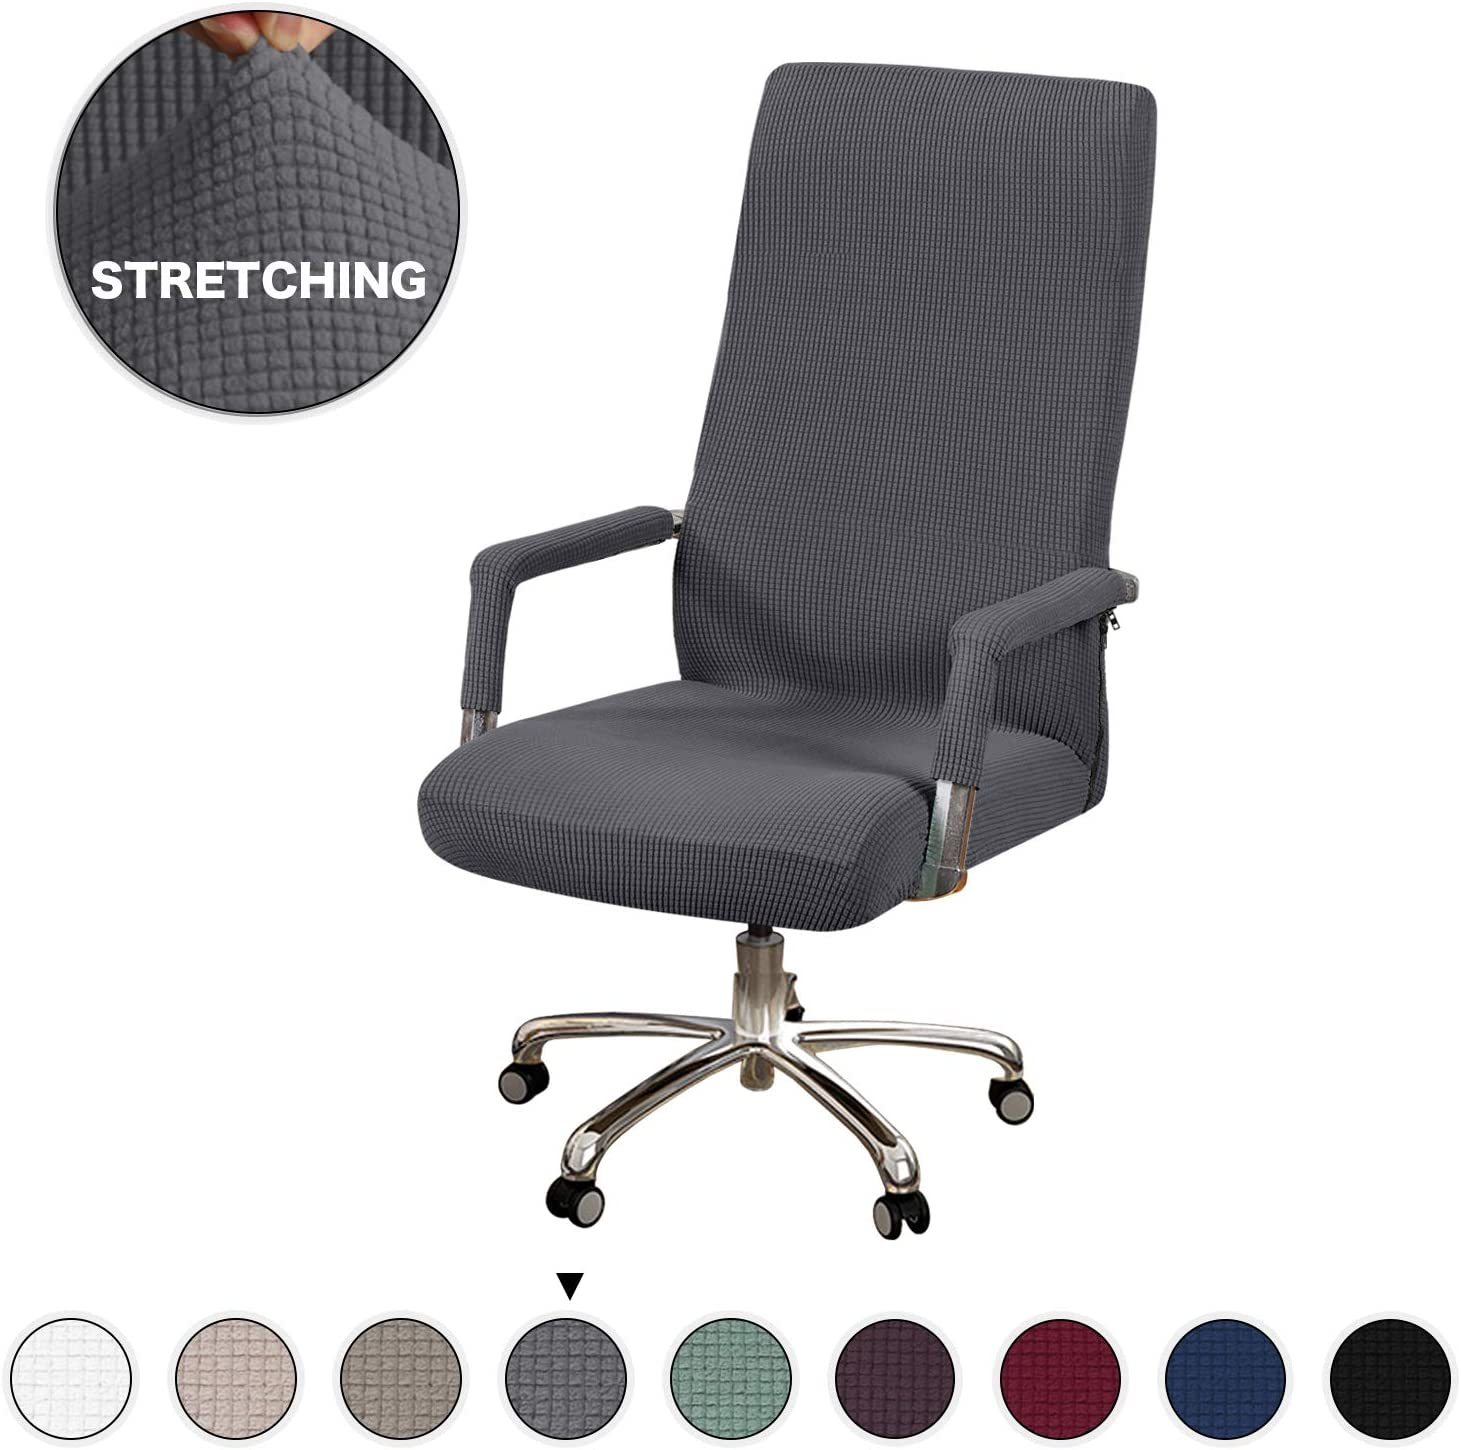 Turquoize Office Chair Cover Stretch Gray Computer Chair Slipcovers for Universal Rotating Boss Chair Cover with Armrest Chair Cover Machine Washable with Jacquard Fabric Super Soft, Medium, Gray